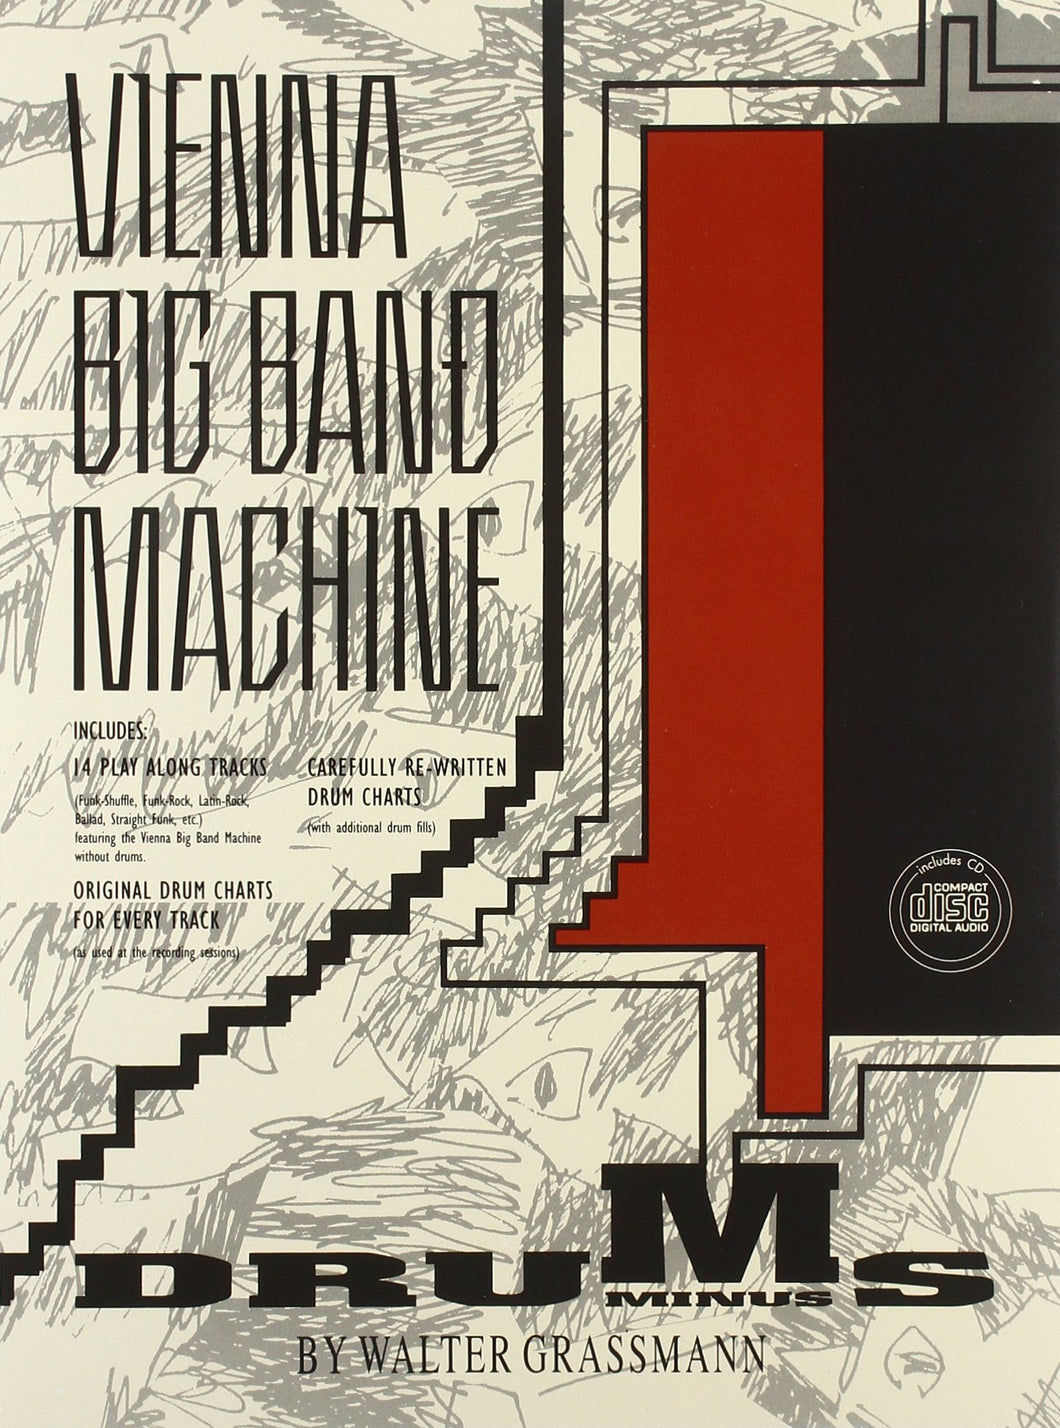 Just Another Opener - Vienna Big Band Machine - Collection of Drum Transcriptions / Drum Sheet Music - Alfred Music VBBMMD